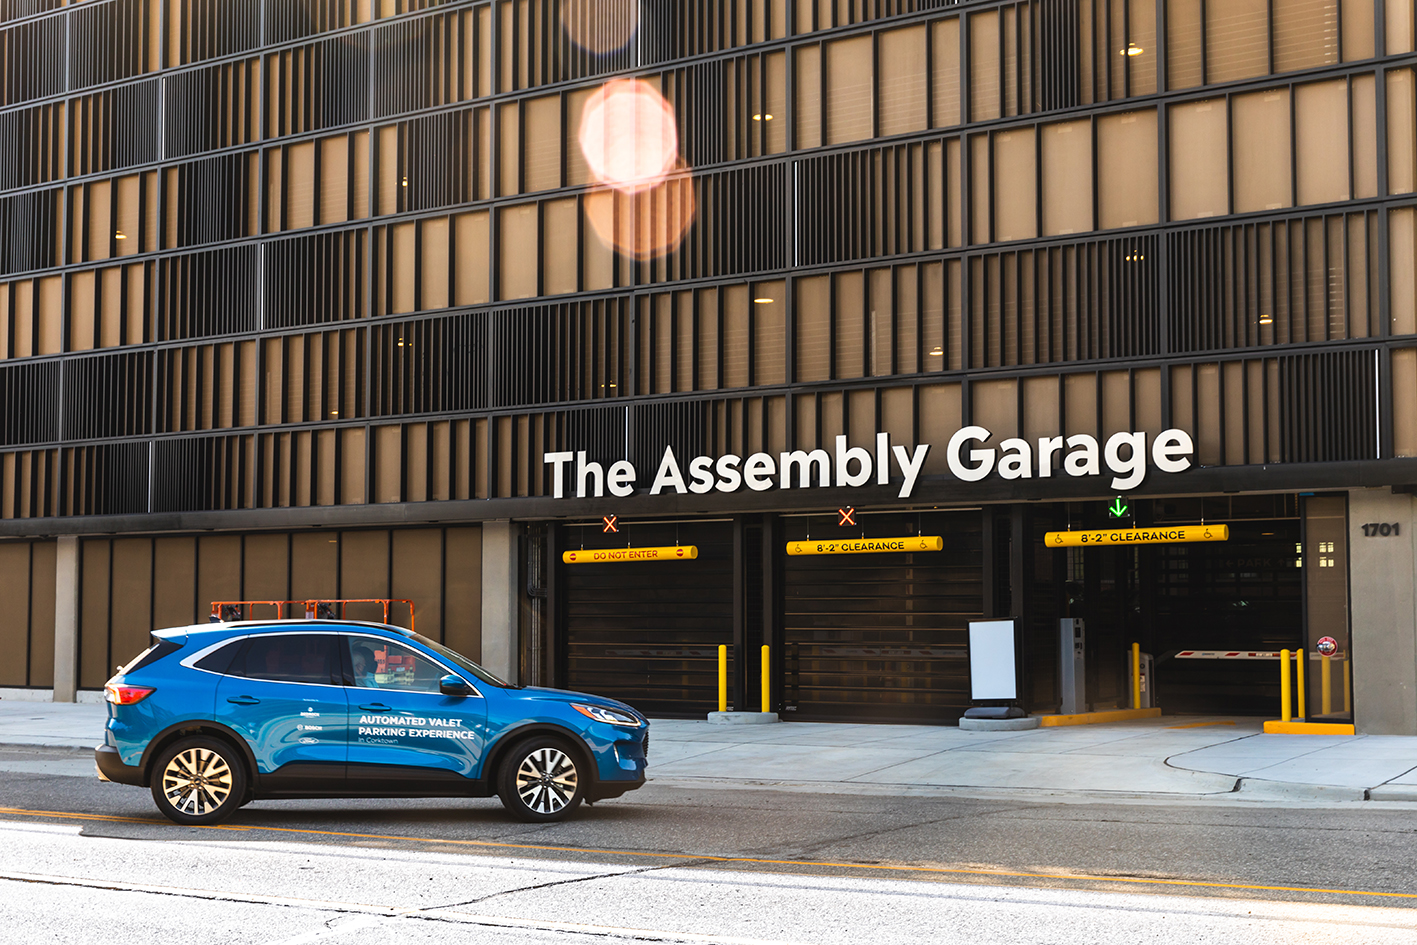 Ford, Bedrock and Bosch are exploring highly automated parking technology